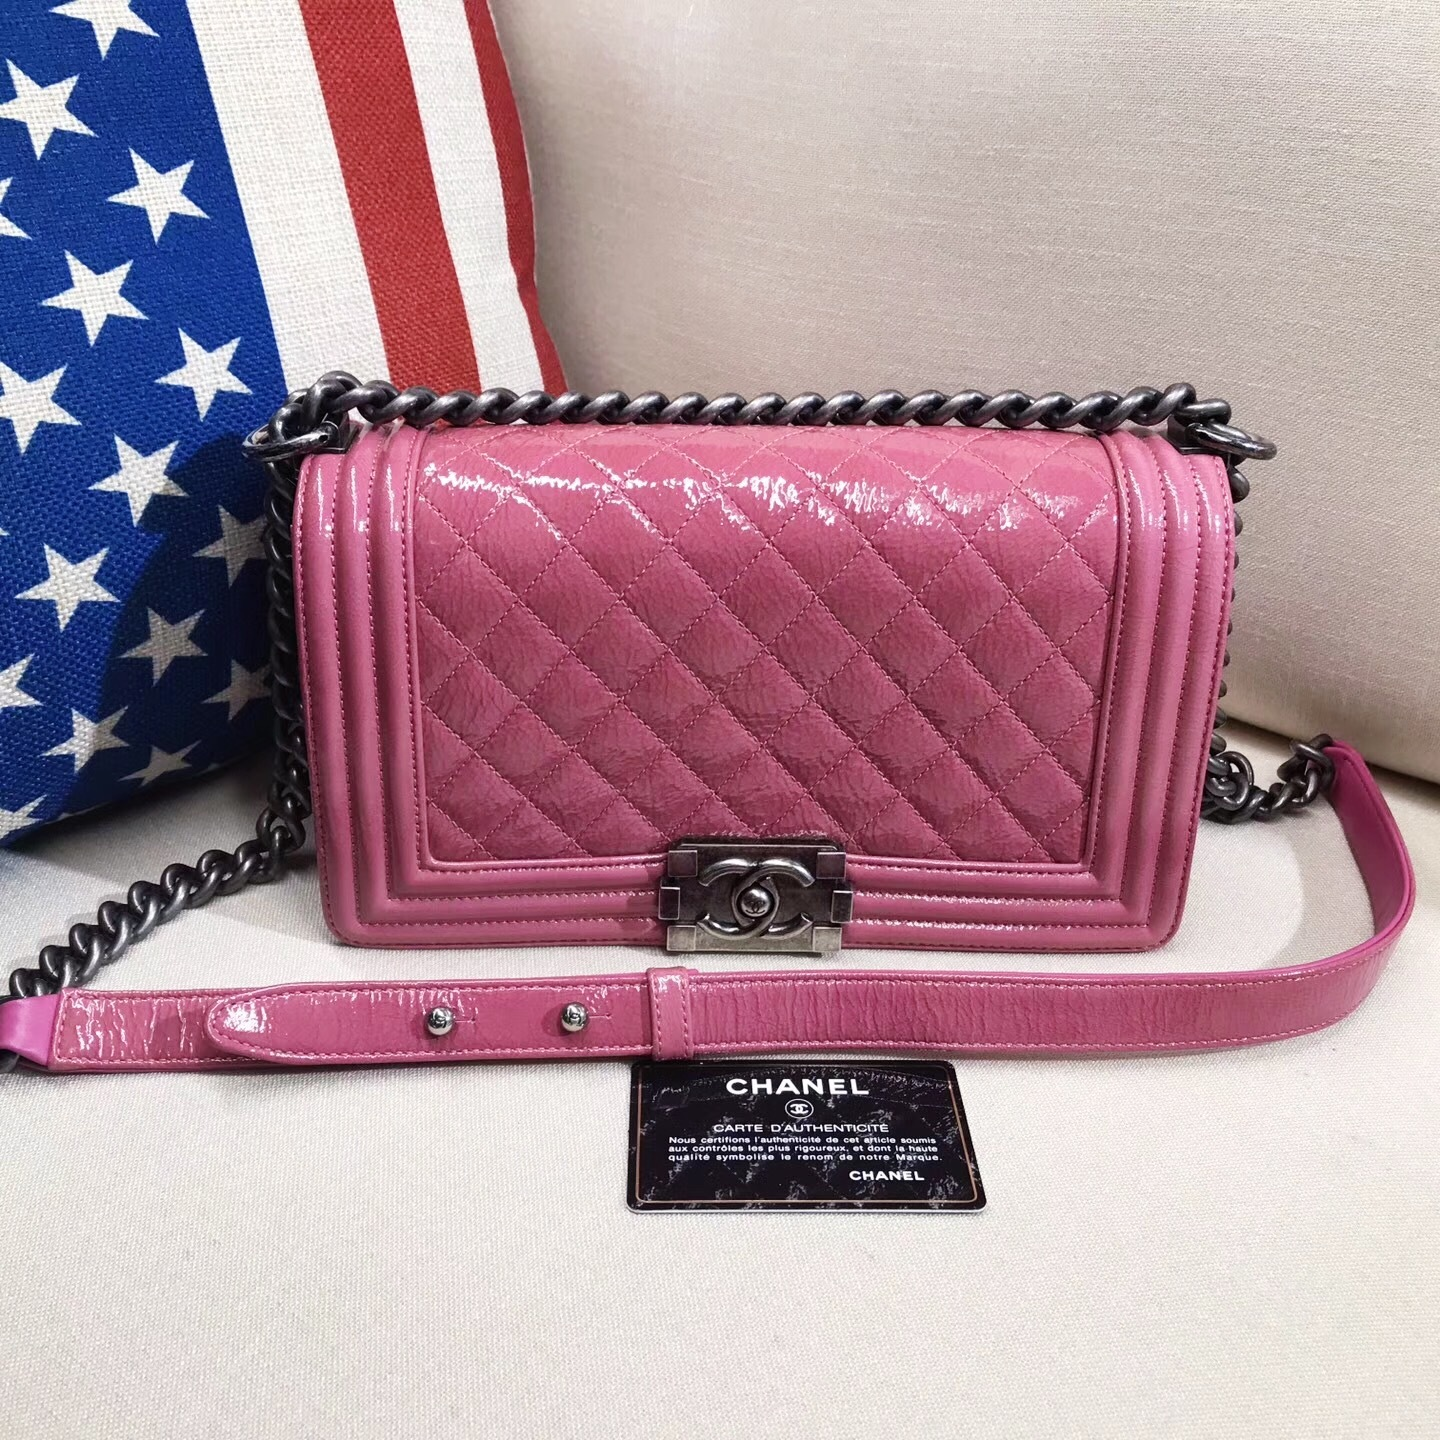 7ddec45730c3 Ee942dd2 3e02 4e25 a633 5b7bf79863dc. Ee942dd2 3e02 4e25 a633 5b7bf79863dc.  Previous. AUTHENTIC CHANEL PINK QUILTED GLAZED CALFSKIN ...